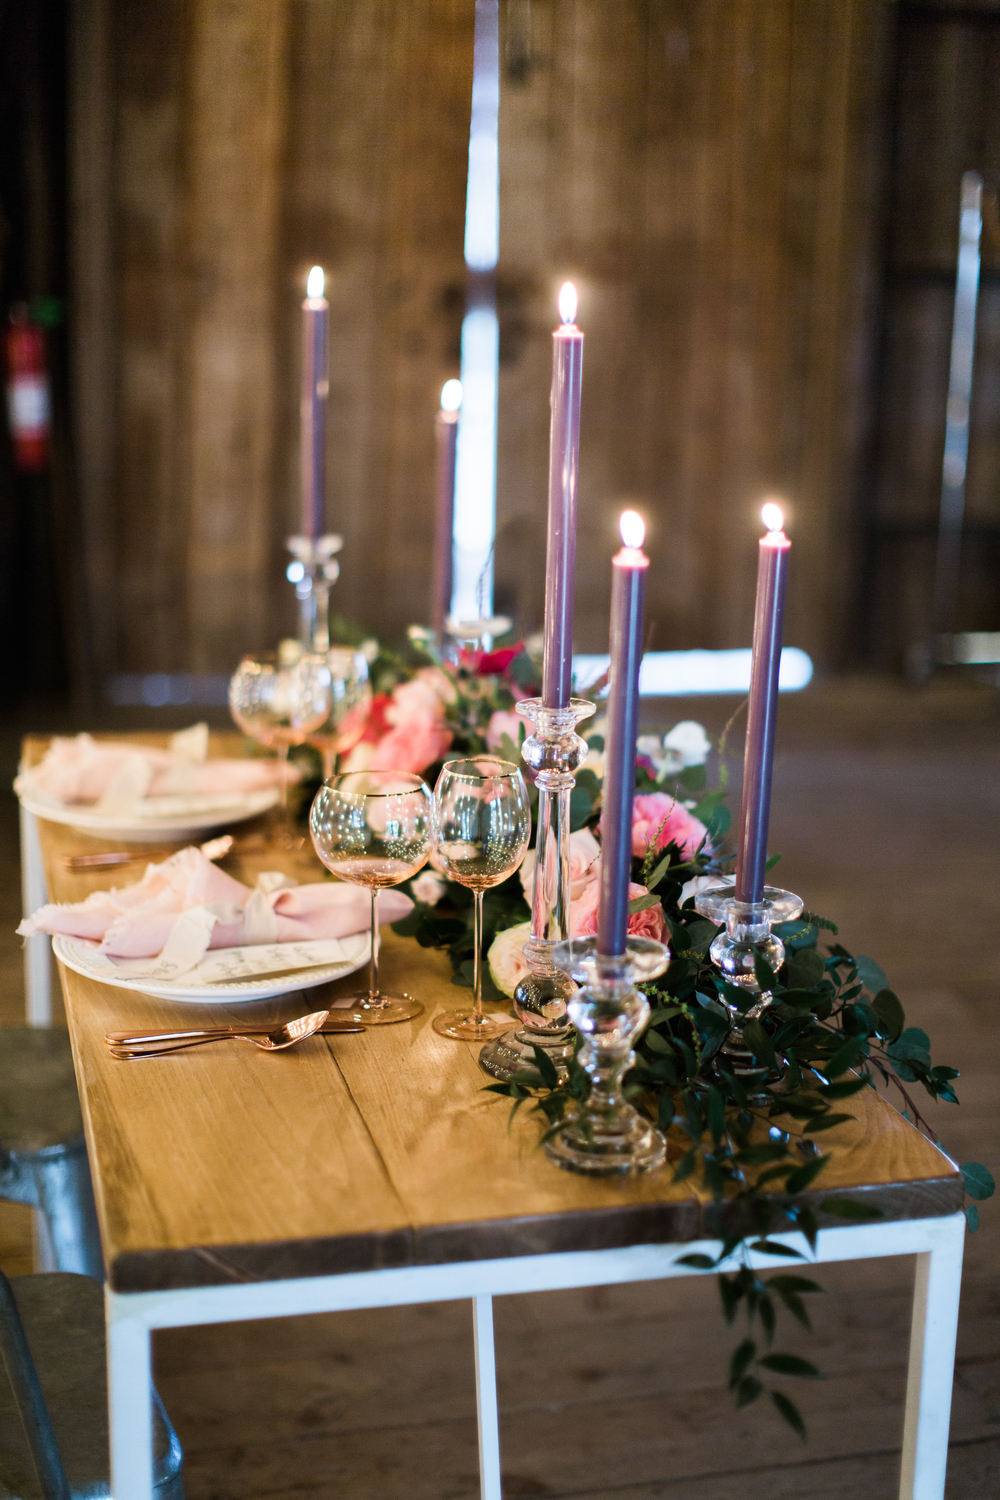 florals: ilonka florals // furniture: maggpie vintage rentals // photo by emily wren photography